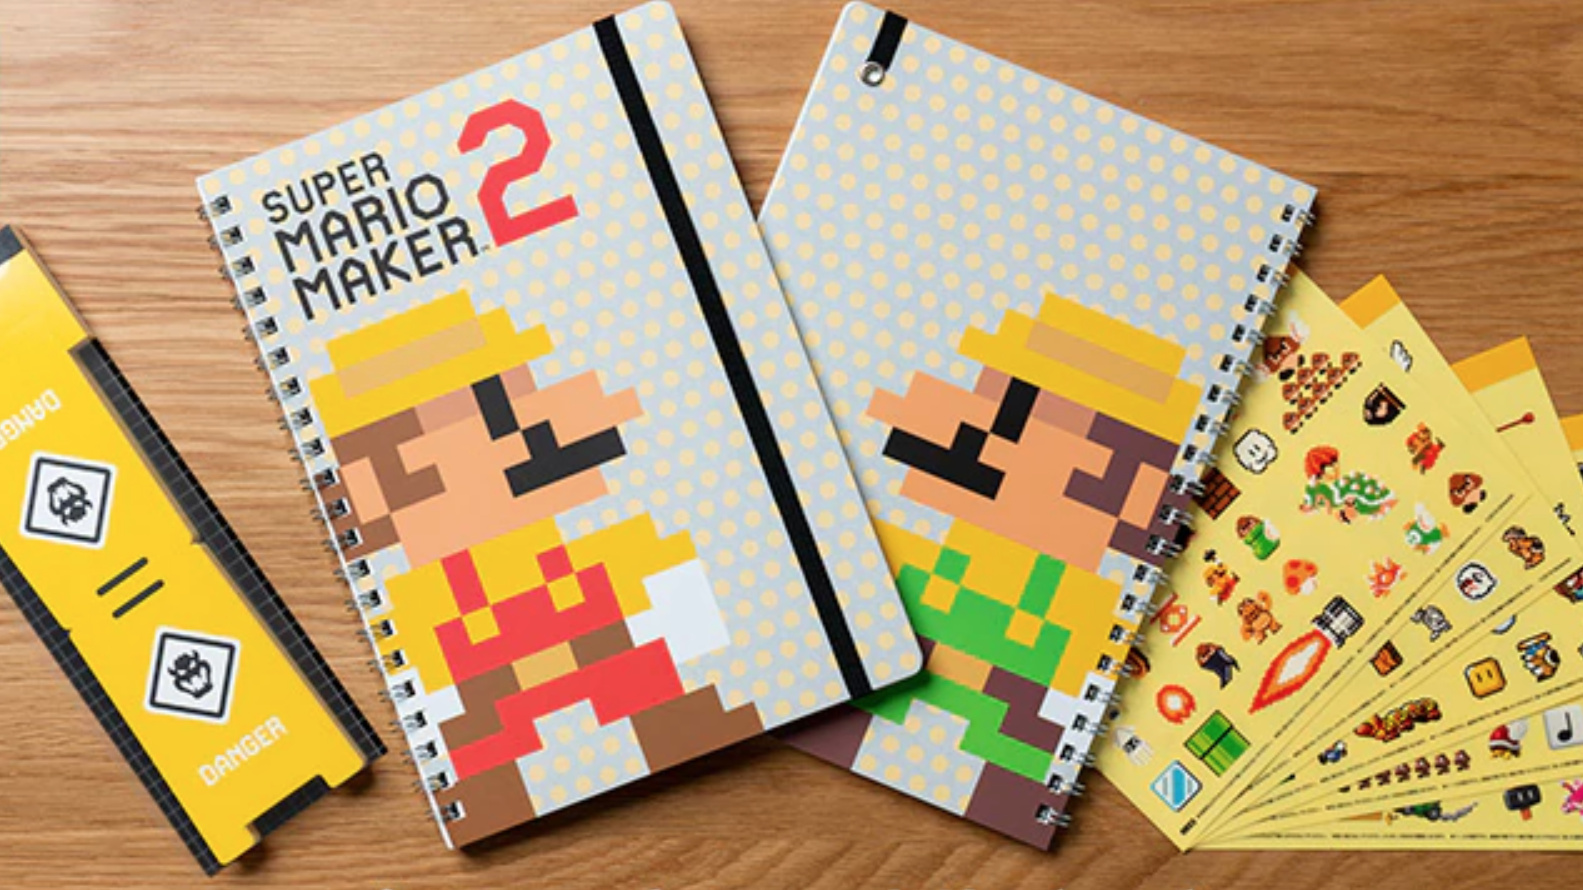 Physical Super Mario Maker 2 Goodies Are Available For Free On My Nintendo In Japan